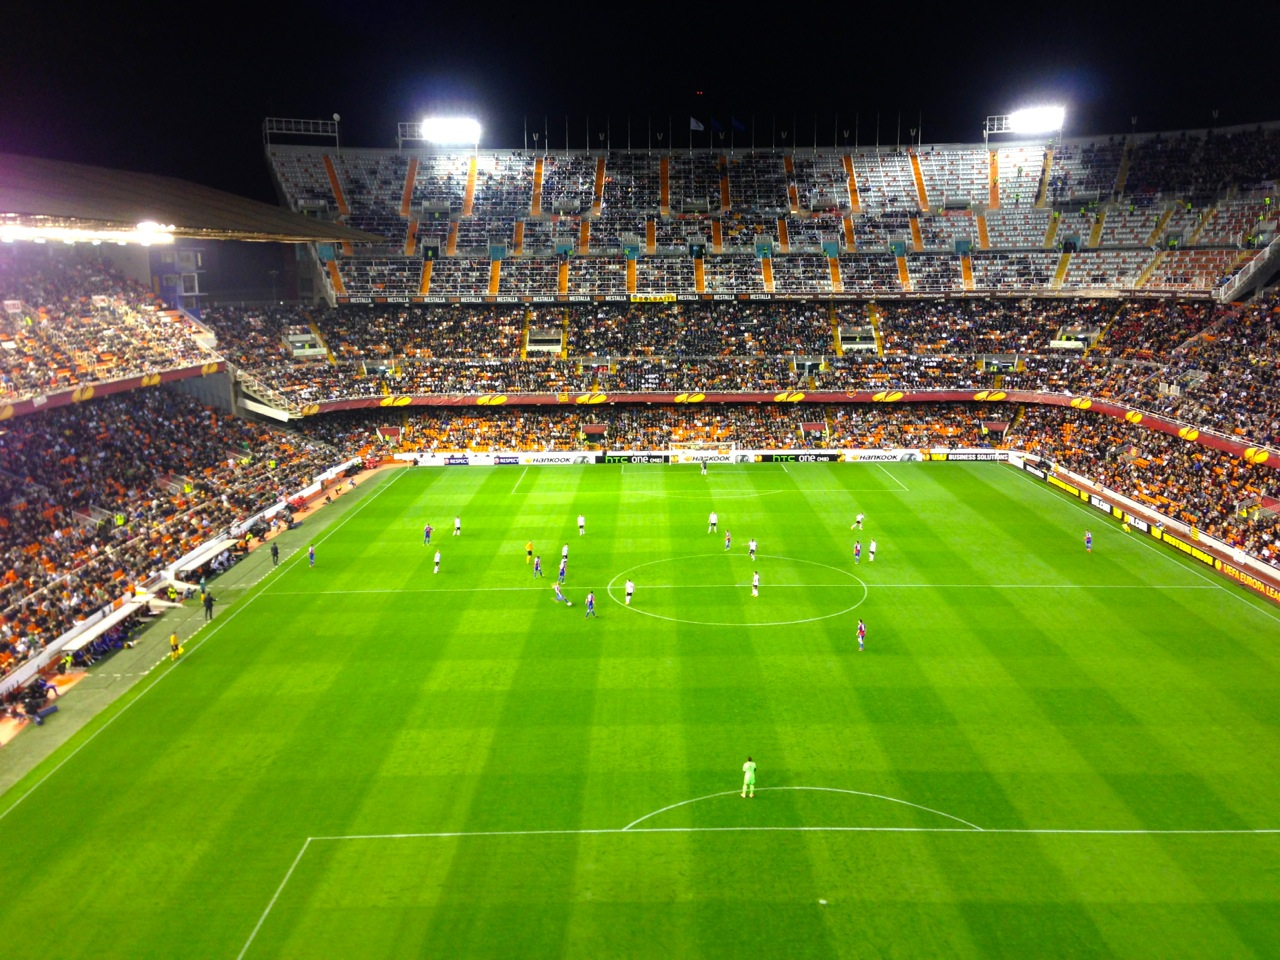 First live football match of my life, Mestalla stadium, Valencia